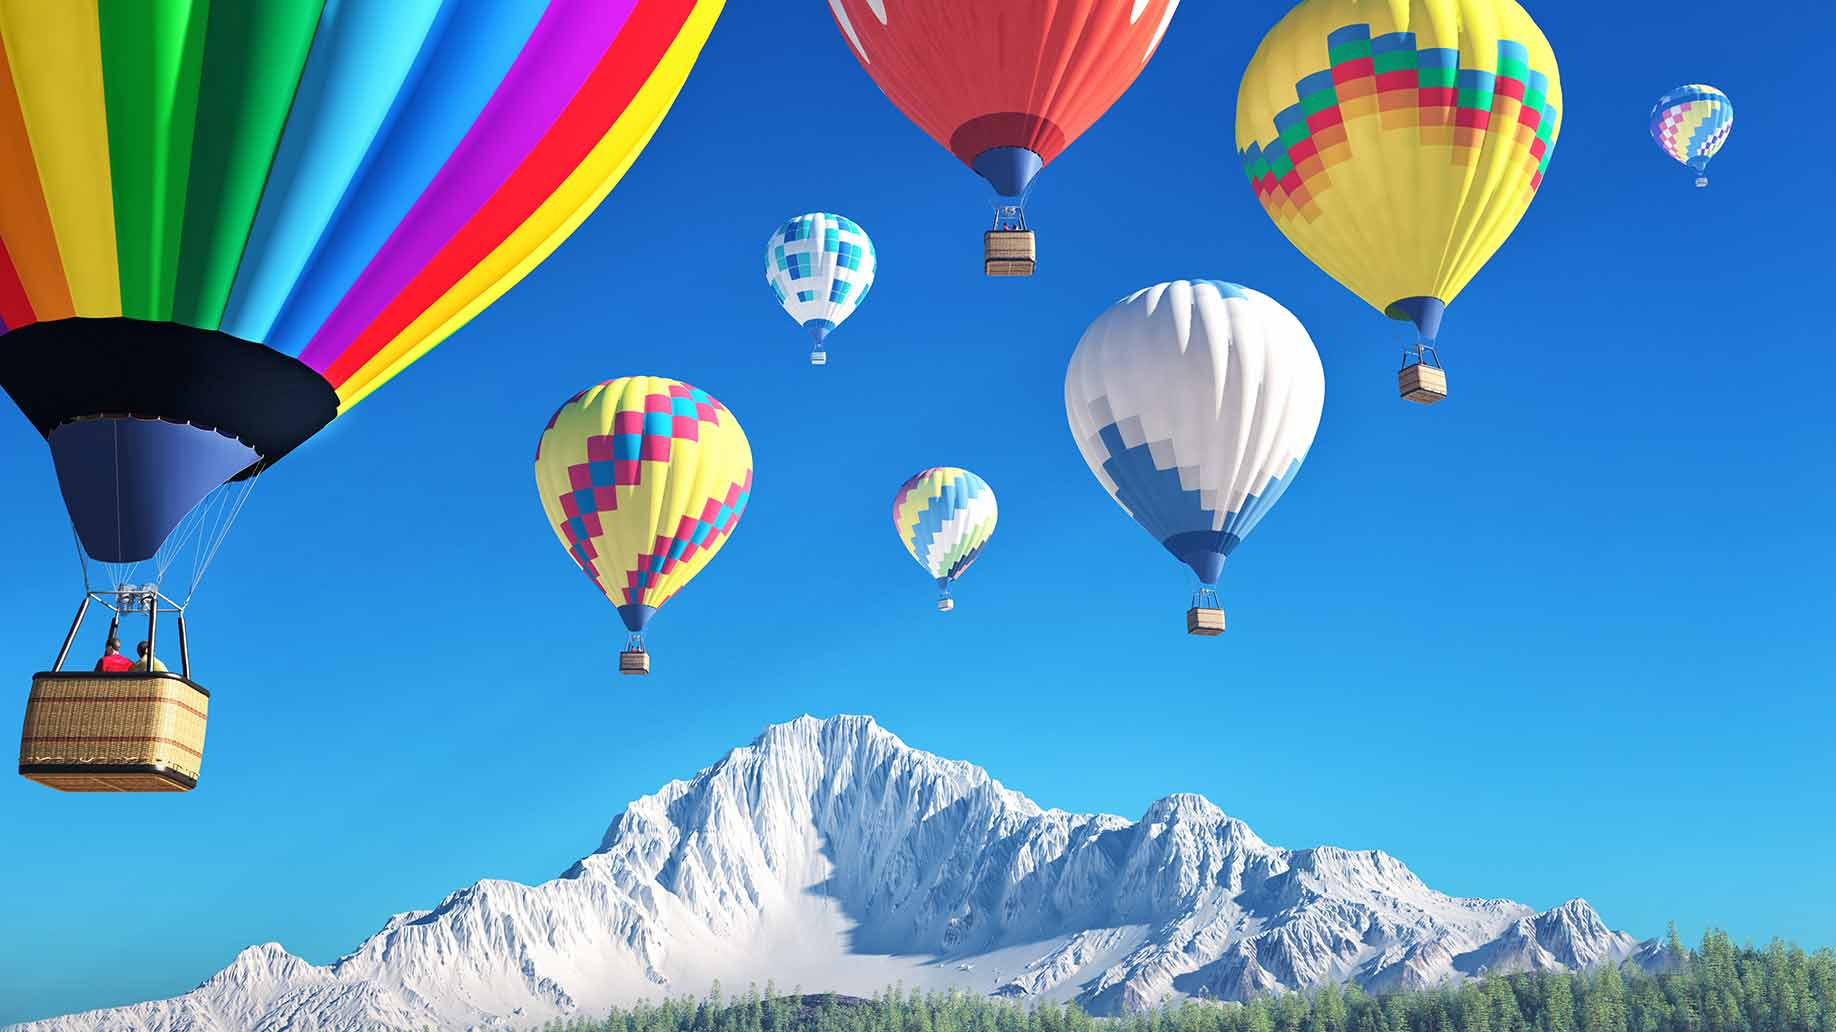 hot air balloon ride in the mountains